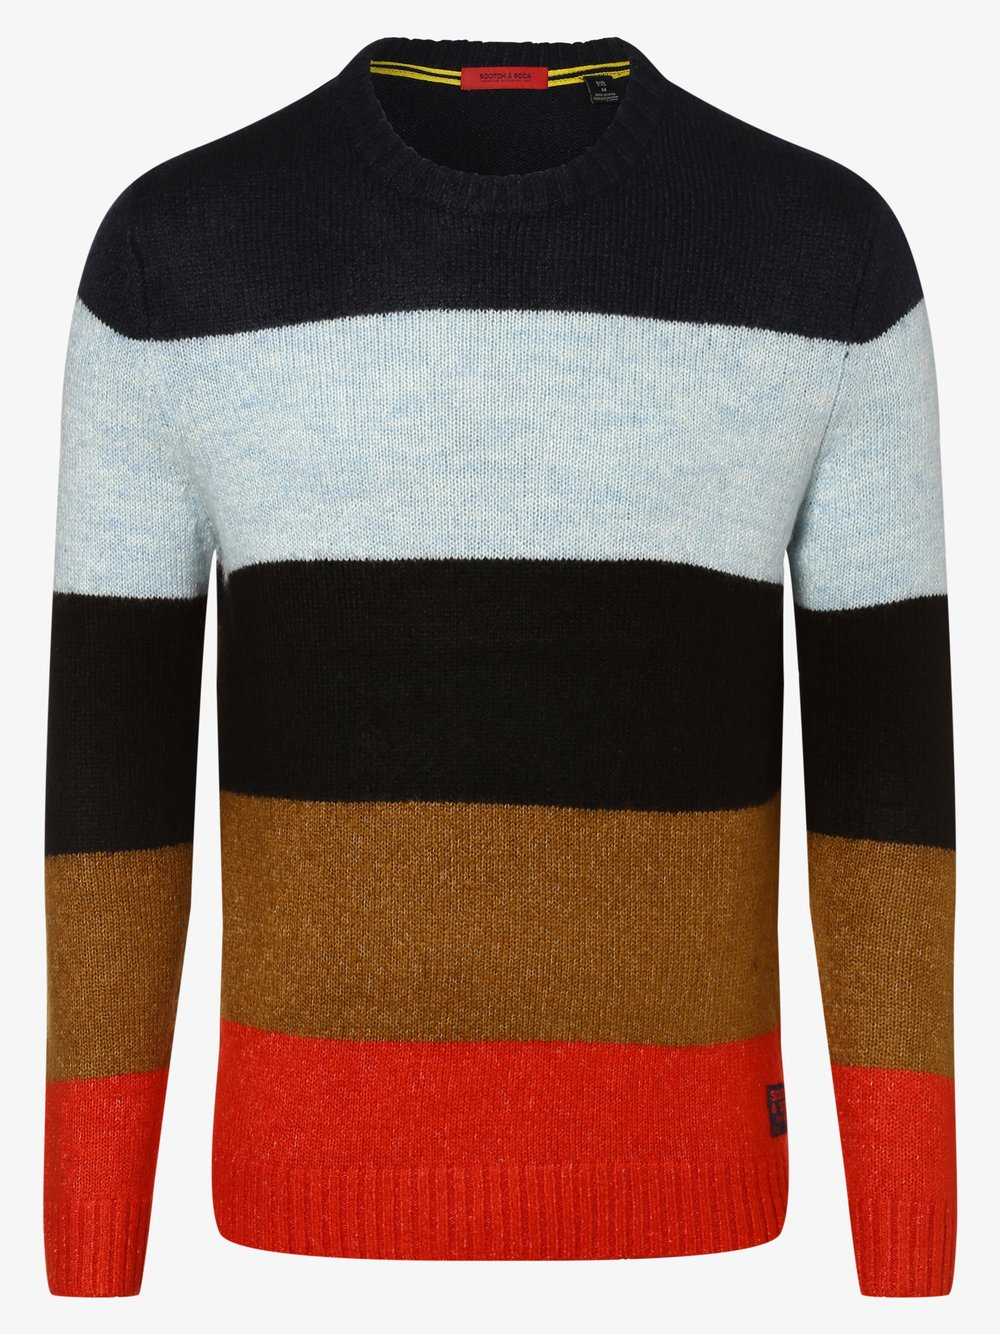 Scotch & Soda - Sweter męski, szary